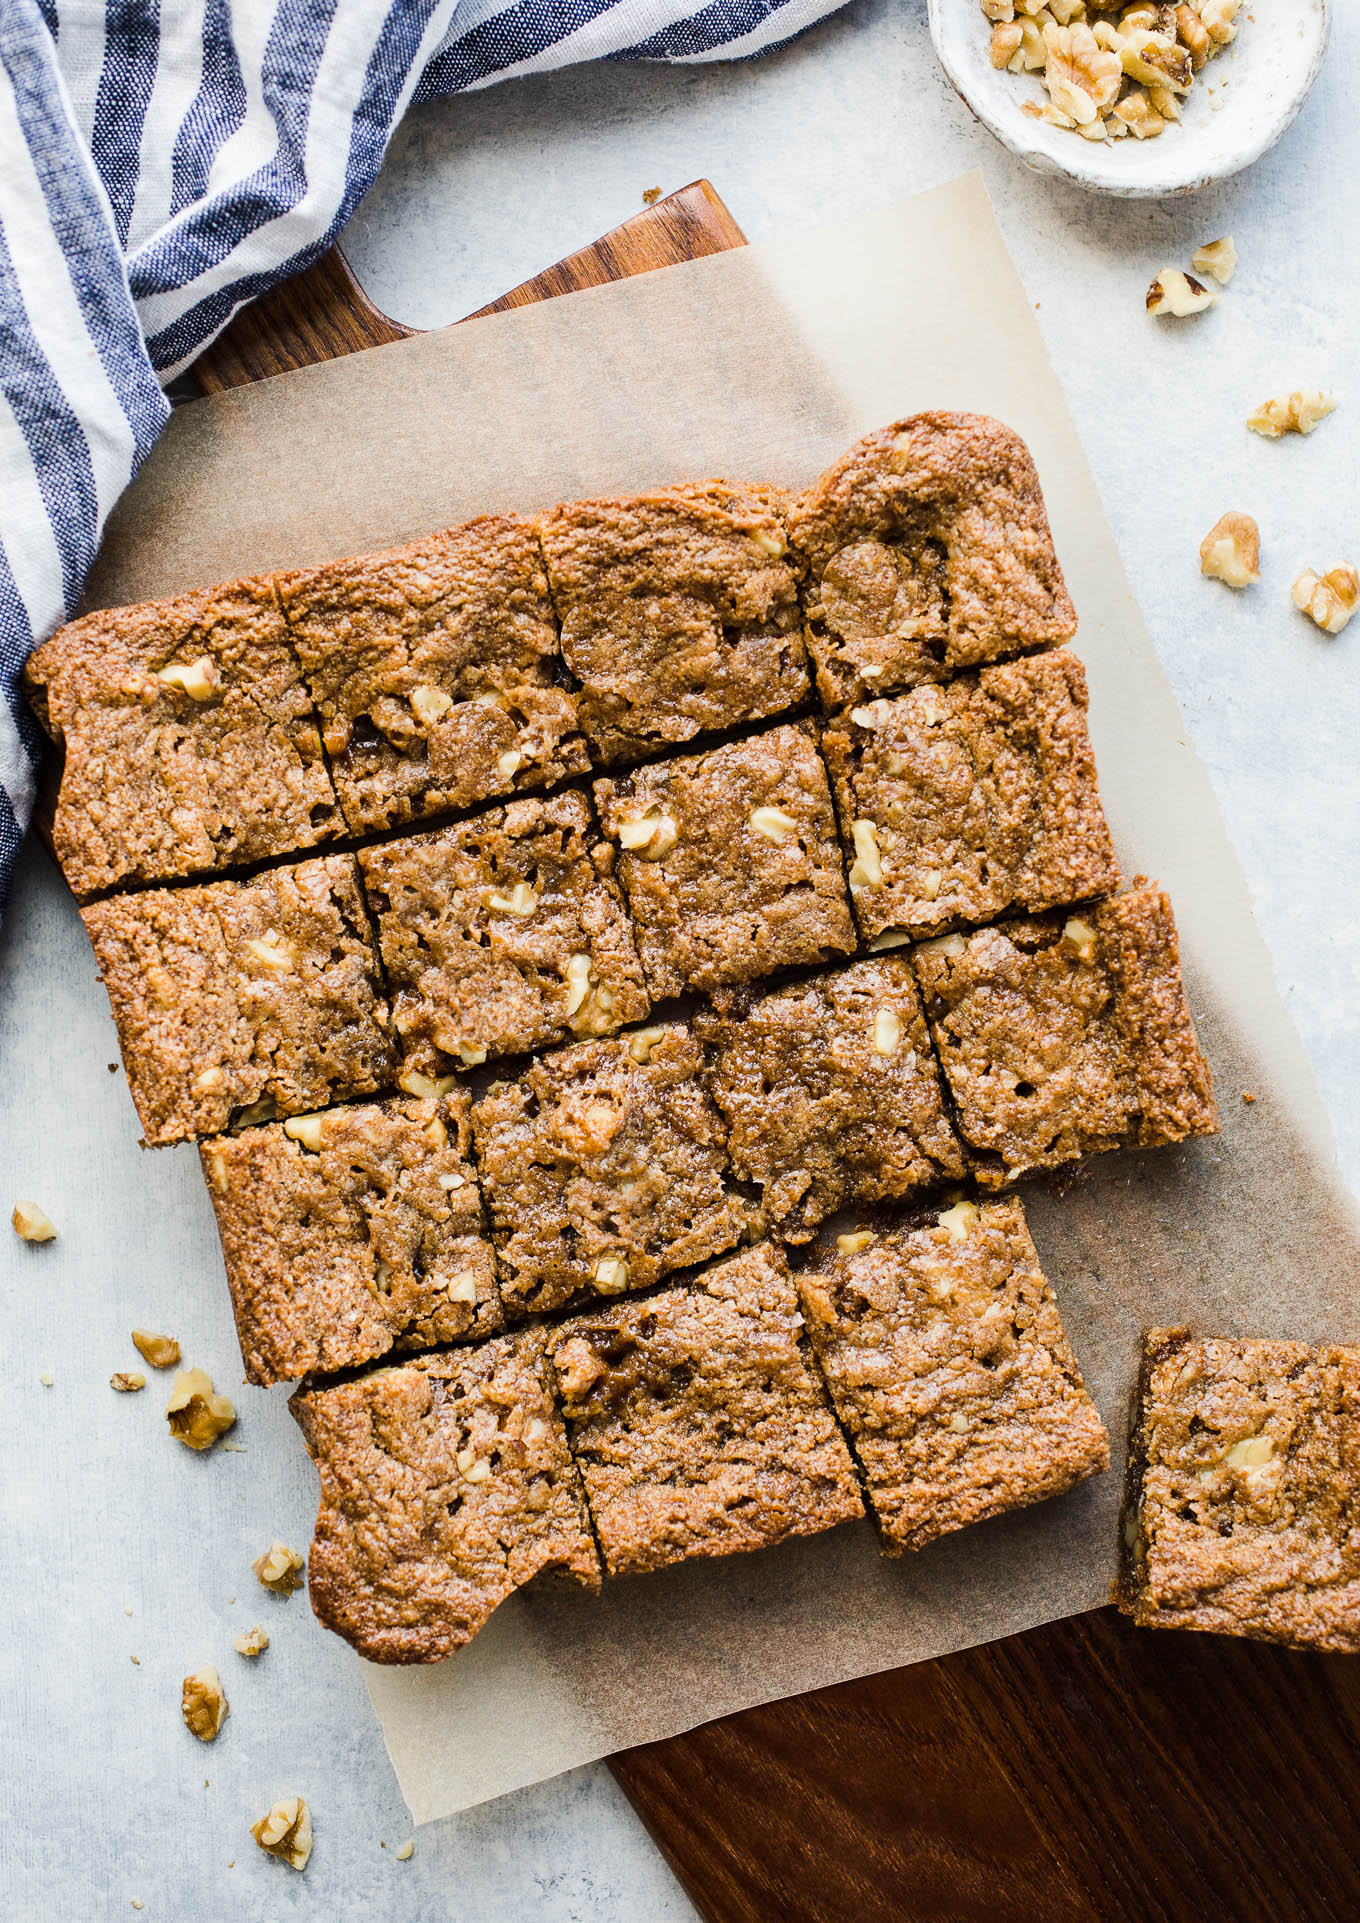 Gluten-Free Maple Walnut Blondies made with almond flour, sweet rice flour, almond butter, walnuts, and infused with maple syrup. A delicious flavor combination that makes for a chewy vegan blondie recipe.